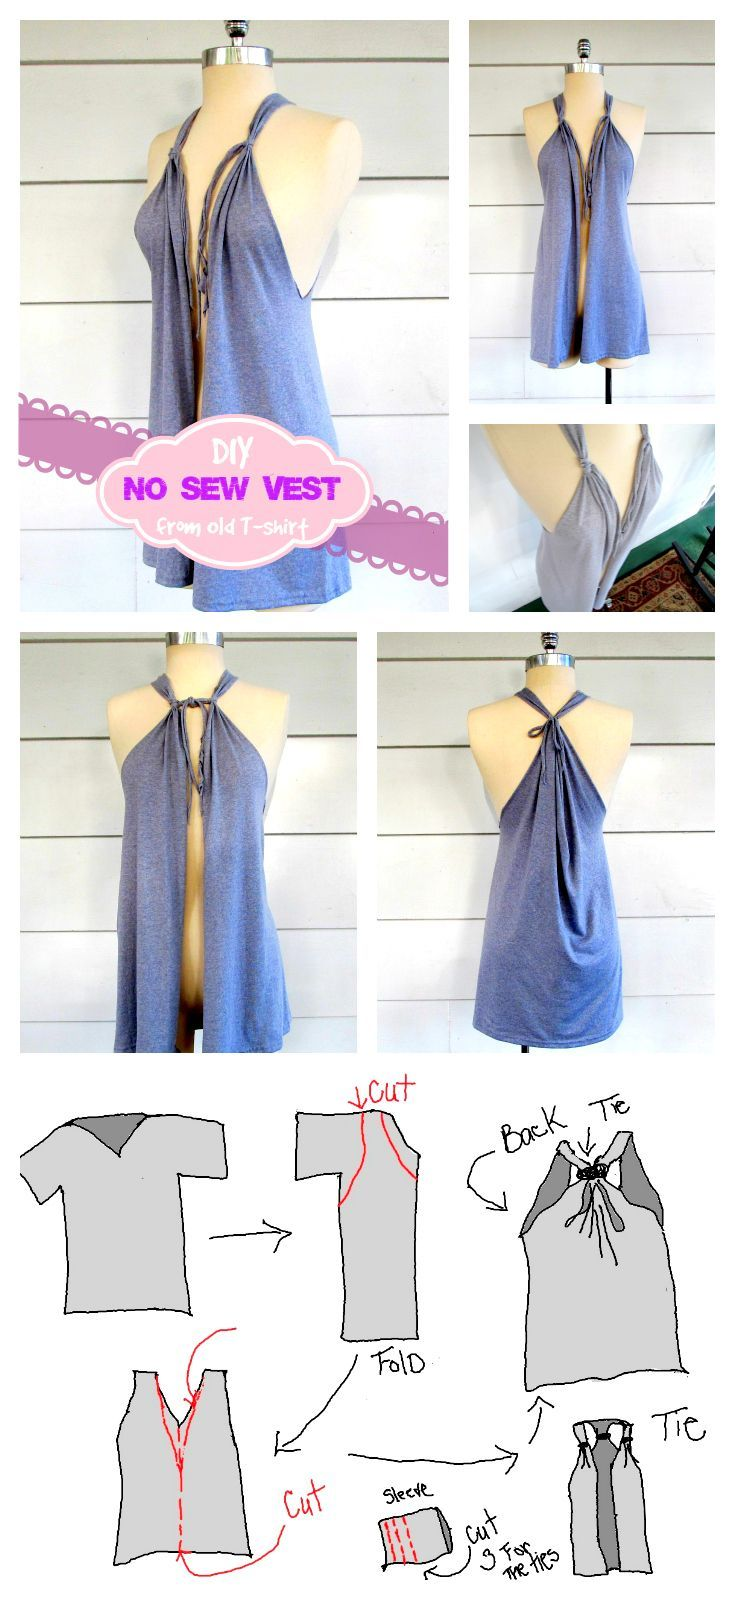 No sew project make beautiful vests from old t shirts in less than explore no sew projects do it yourself projects and more solutioingenieria Images